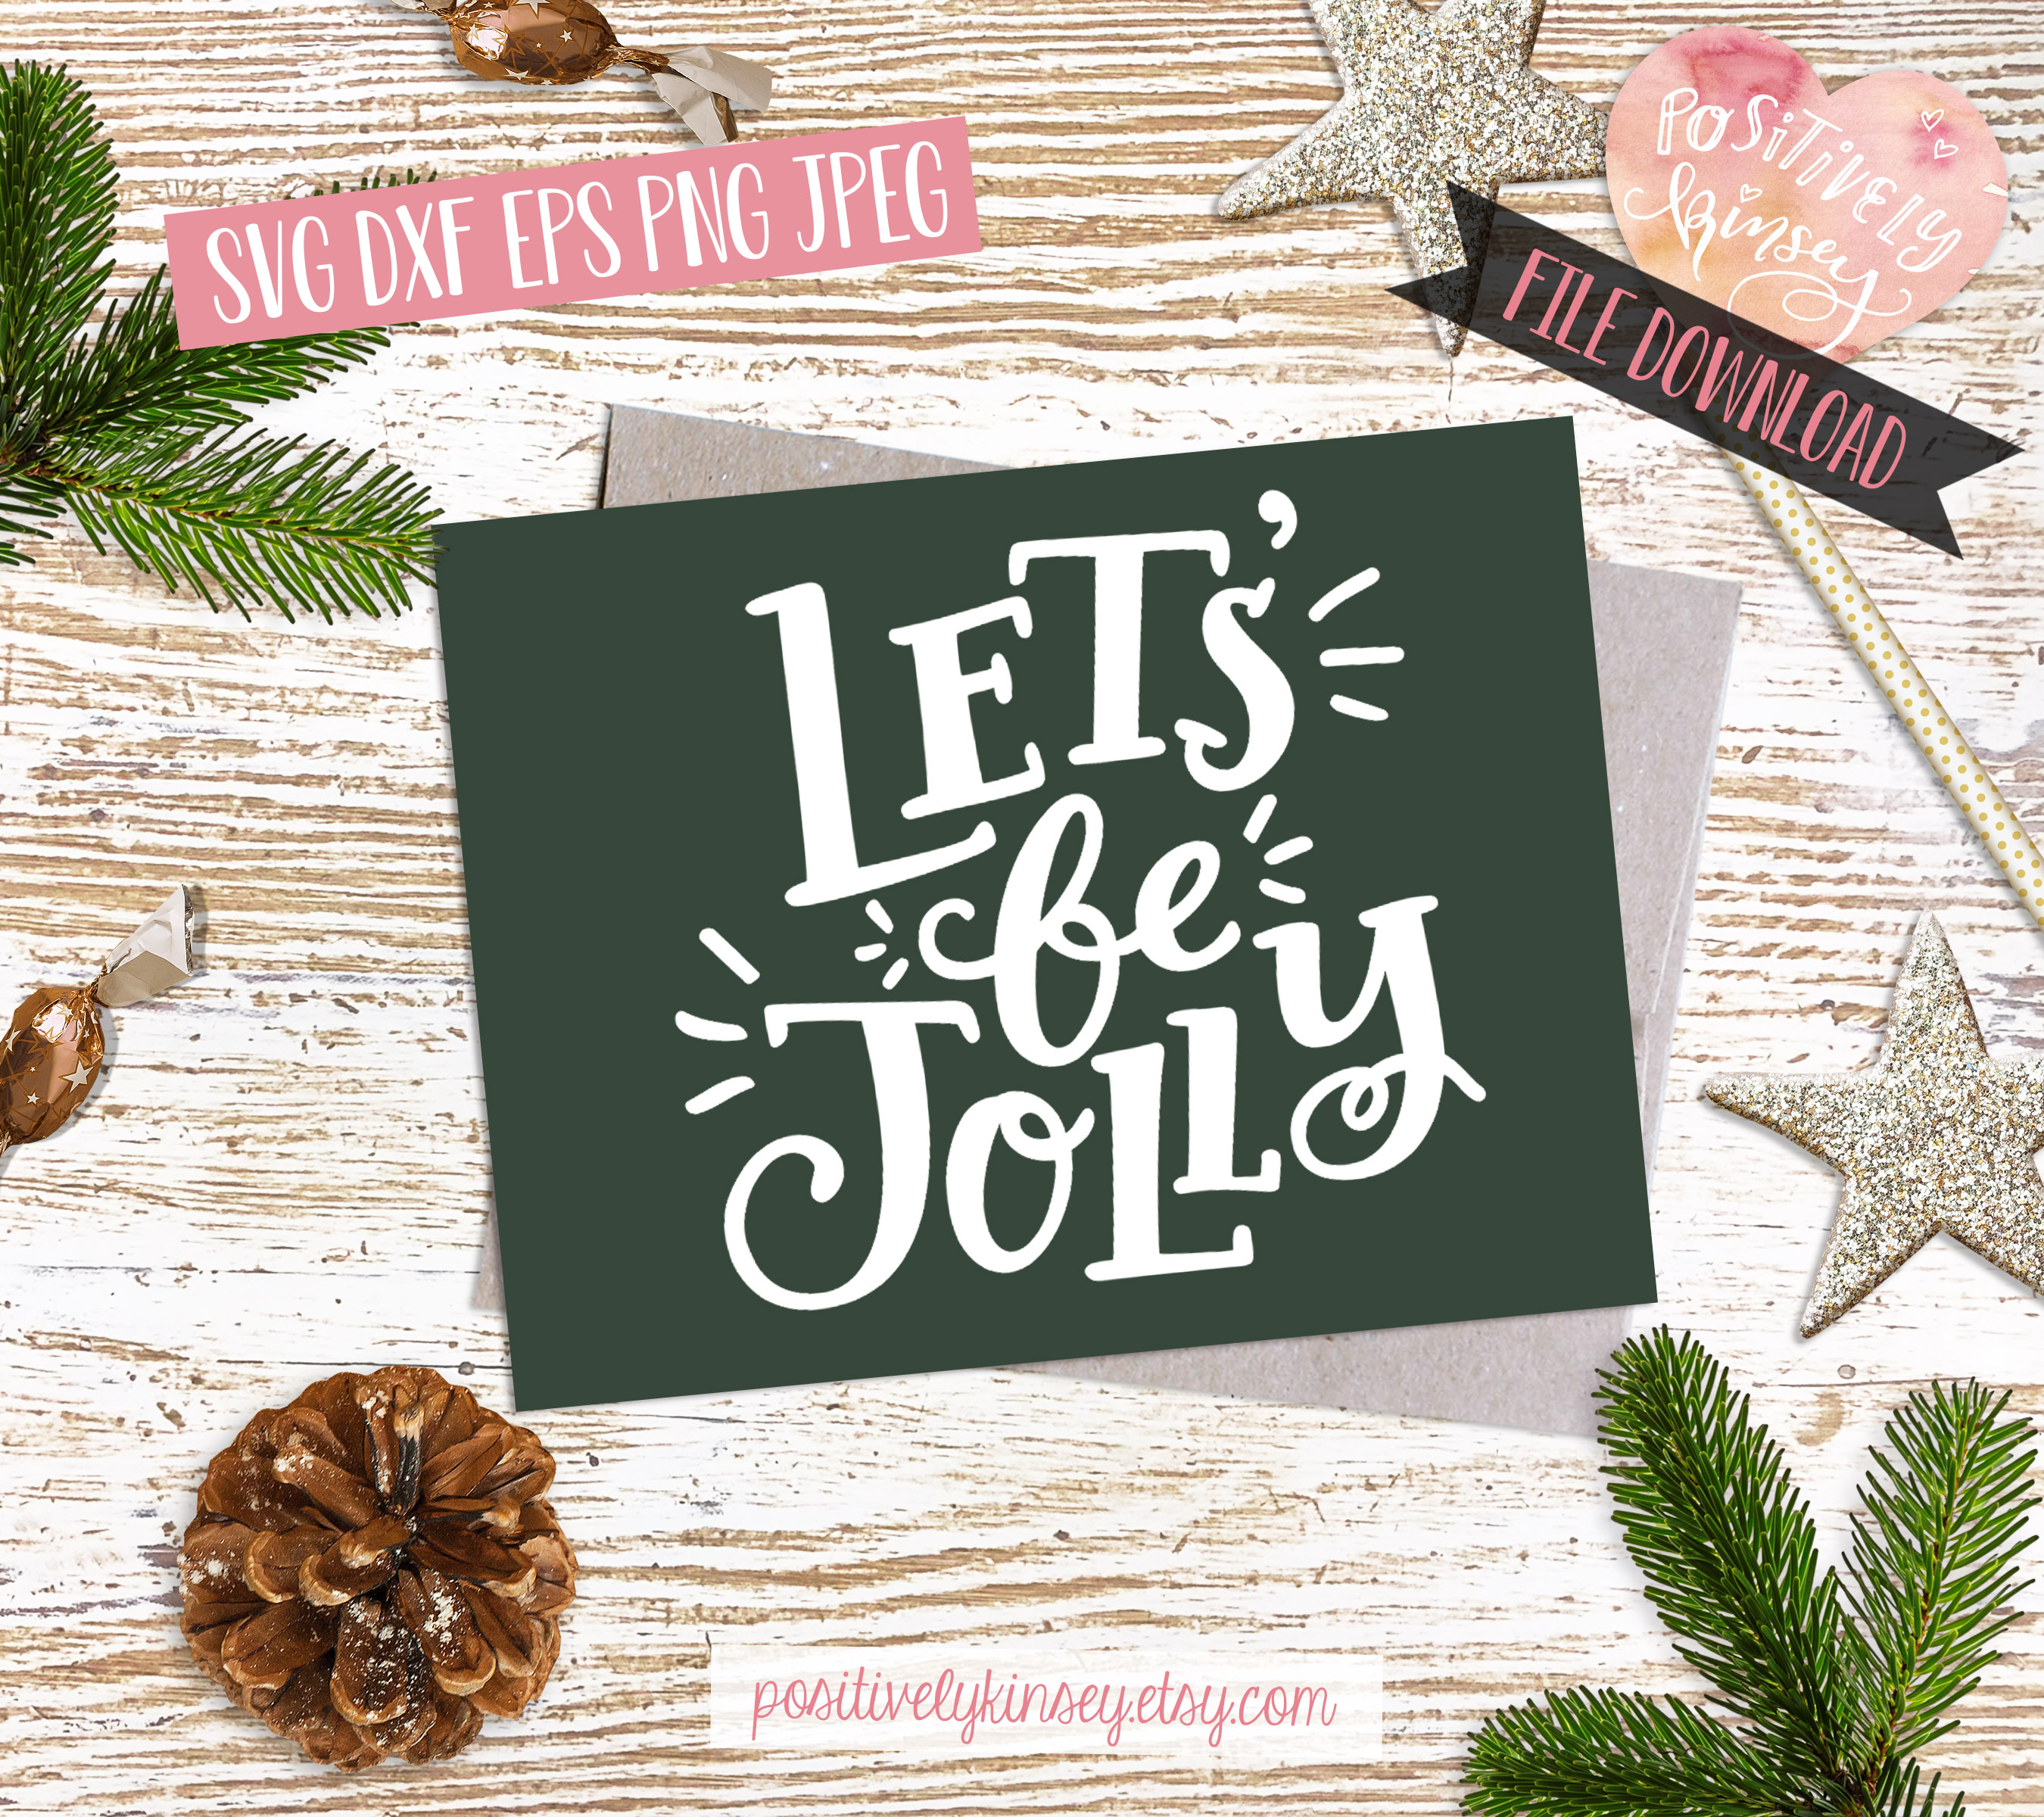 Christmas Quote SVG DXF PNG EPS Let's Be Jolly SVG Design example image 4